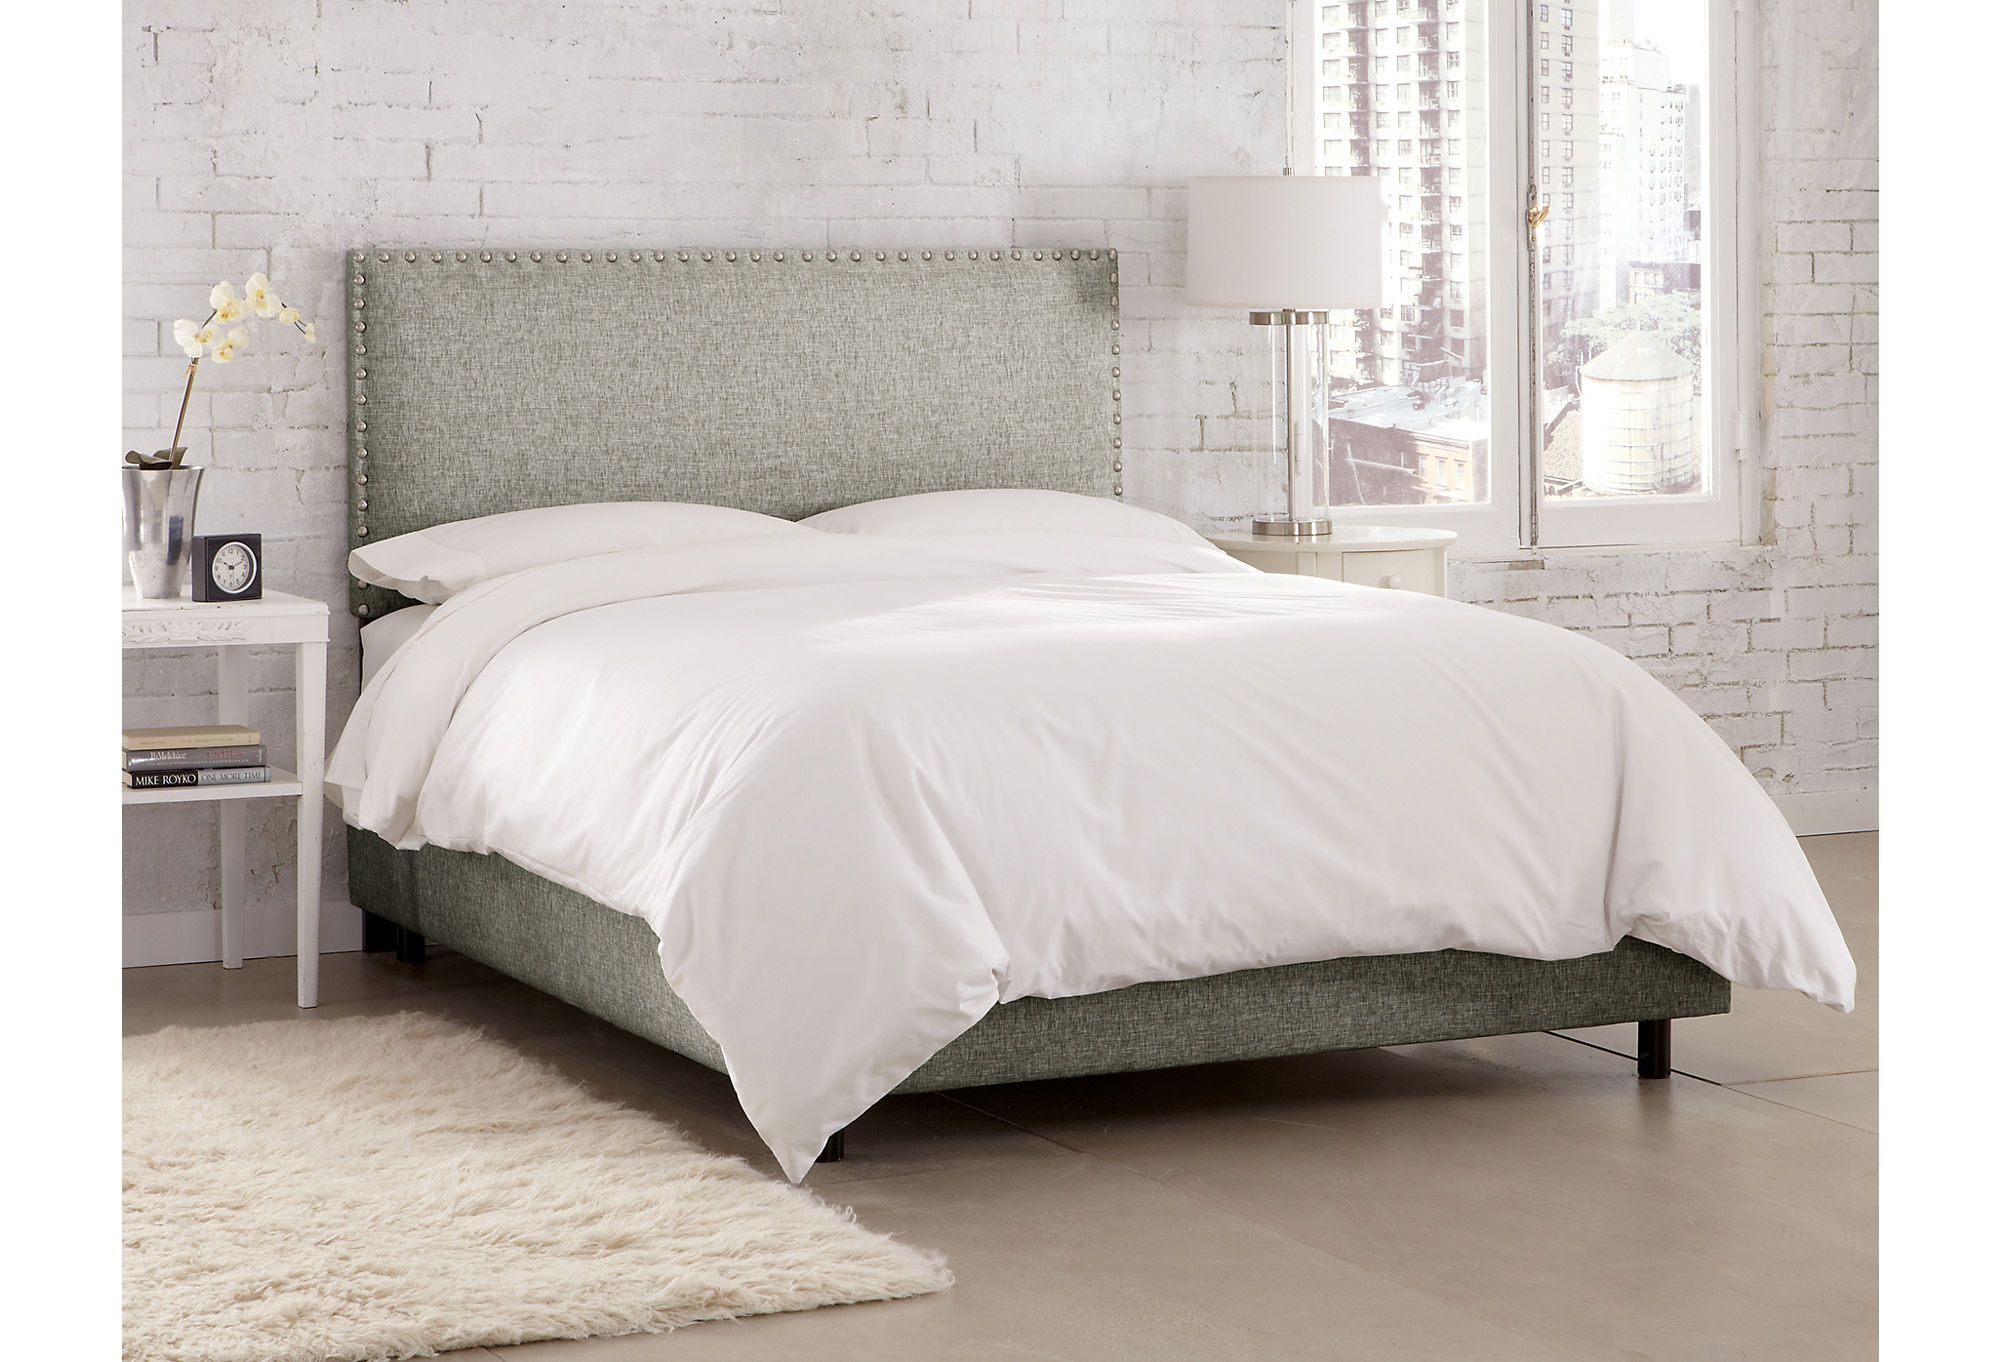 One Kings Lane - Mix It Up - Loren Bed, Gray